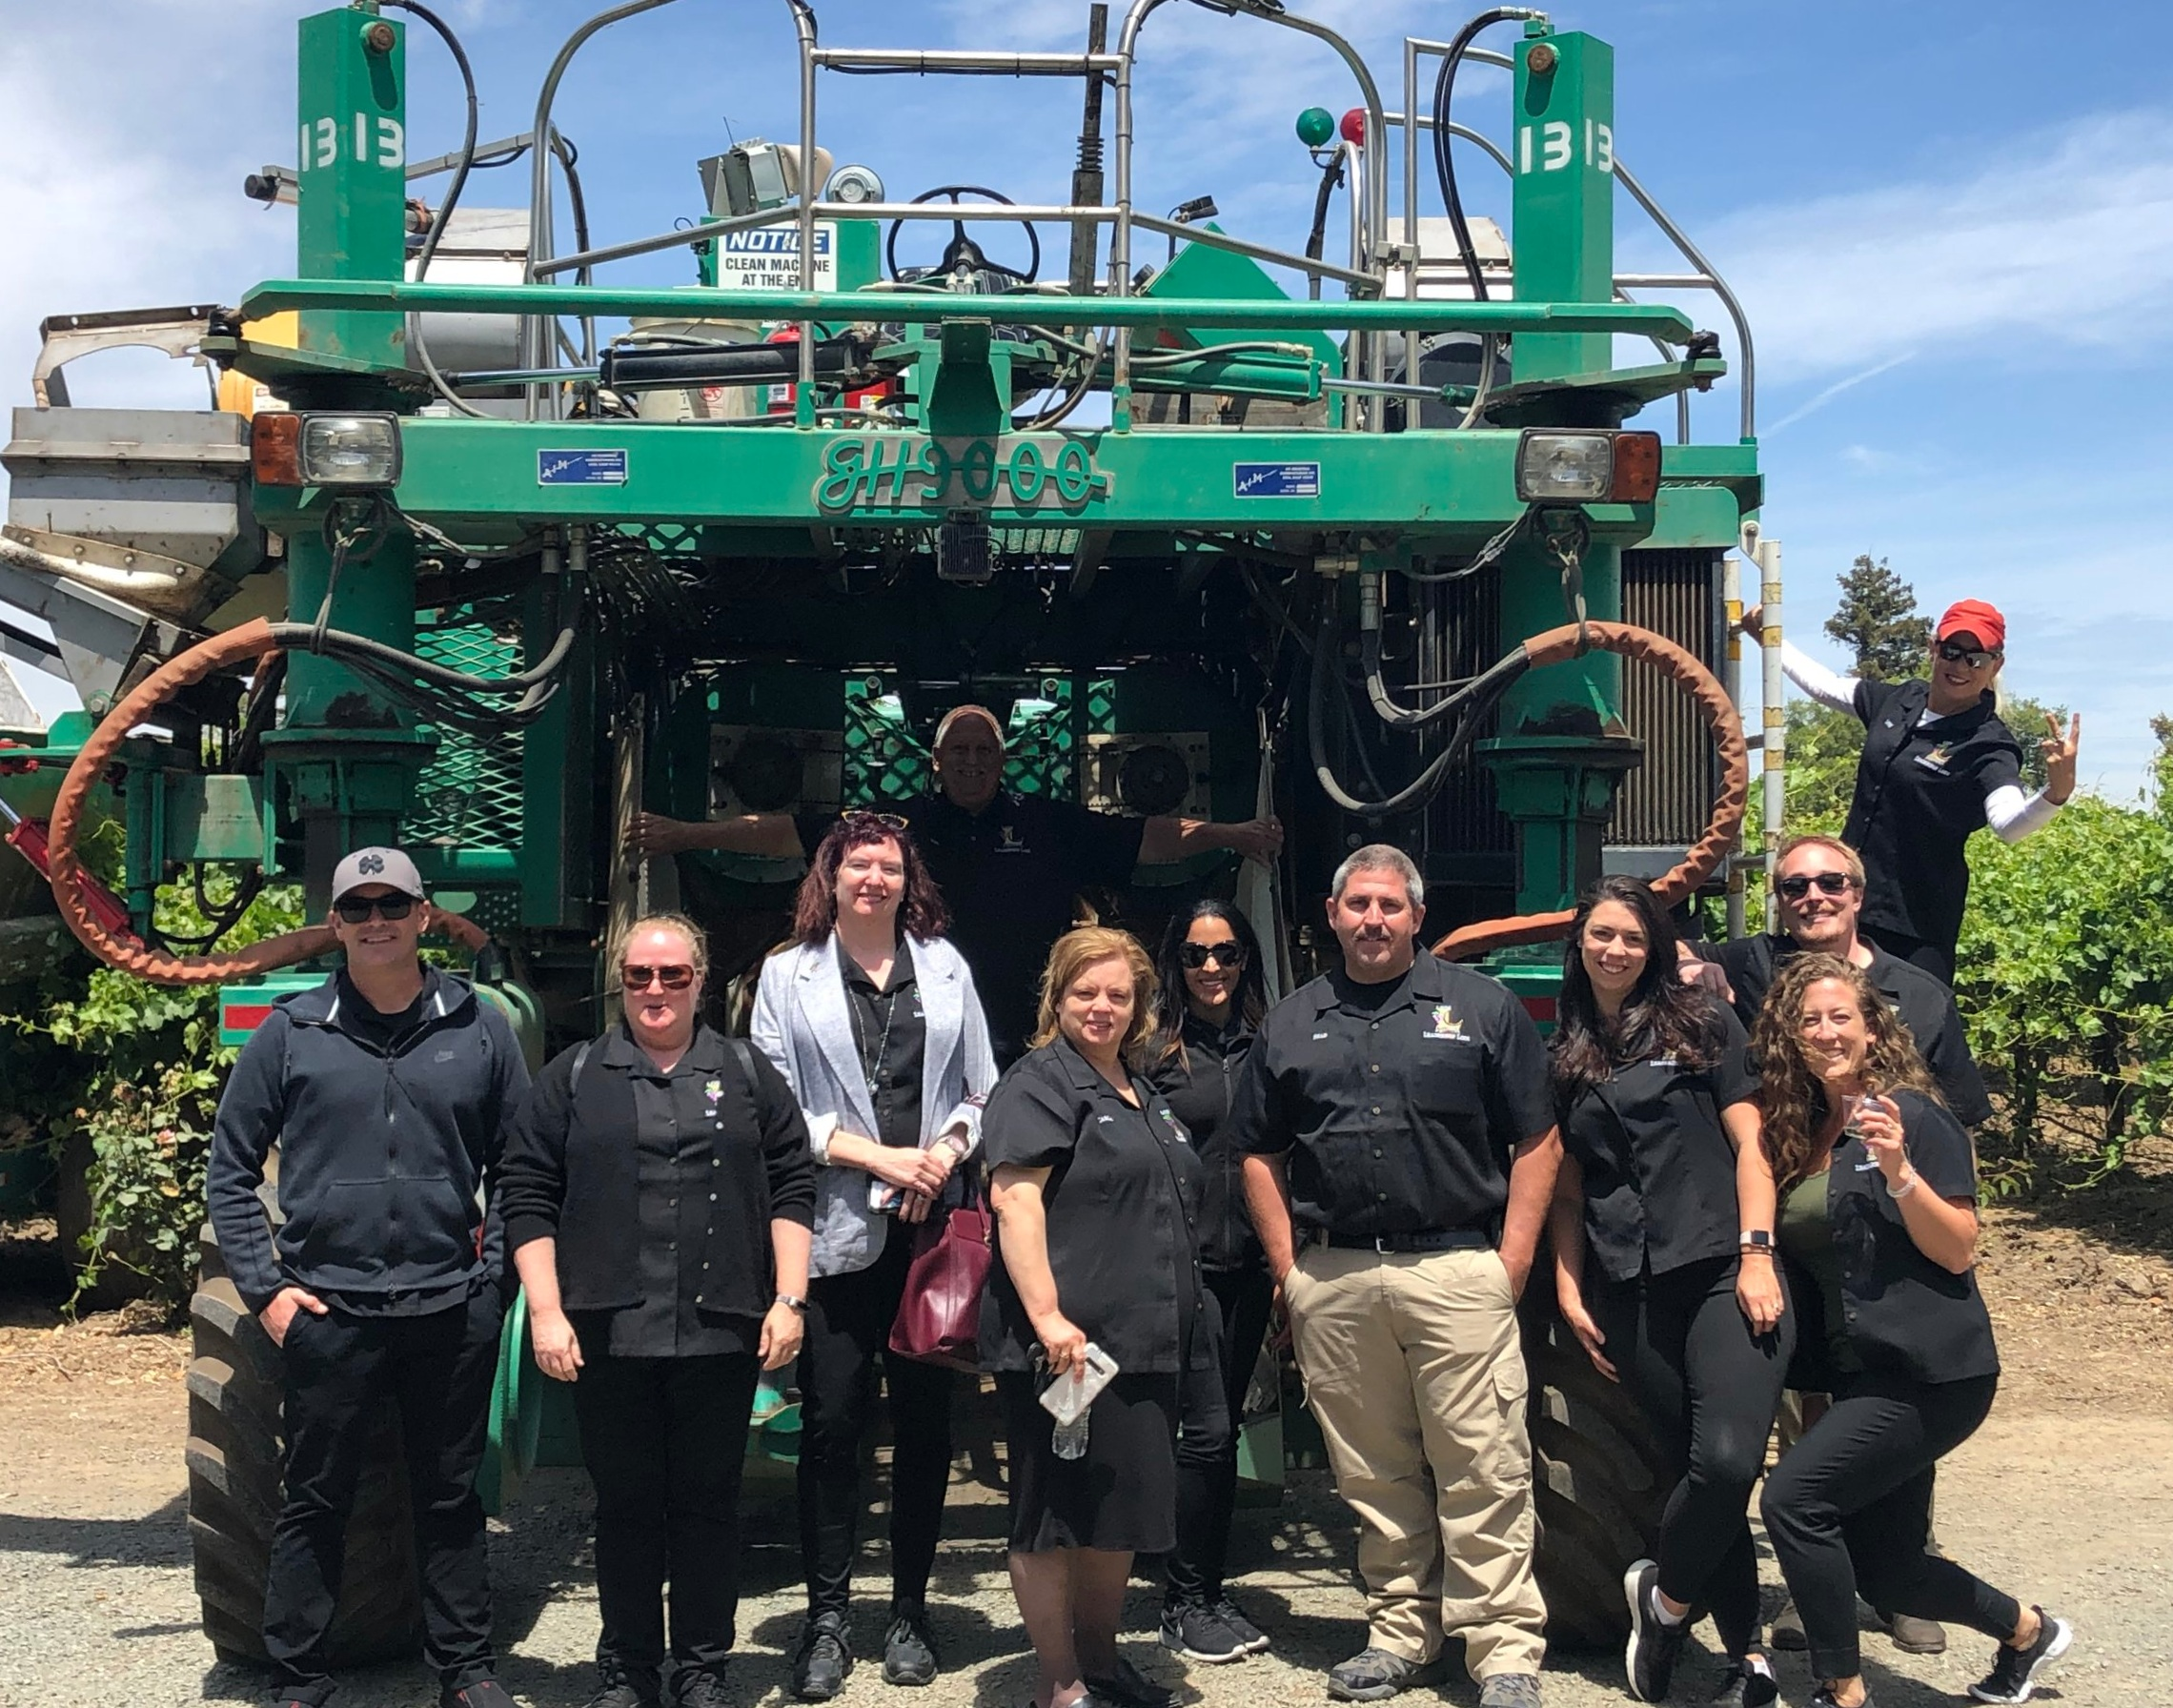 The Leadership Lodi class of 2019 out on Ag Day learning about the Agriculture side of Lodi